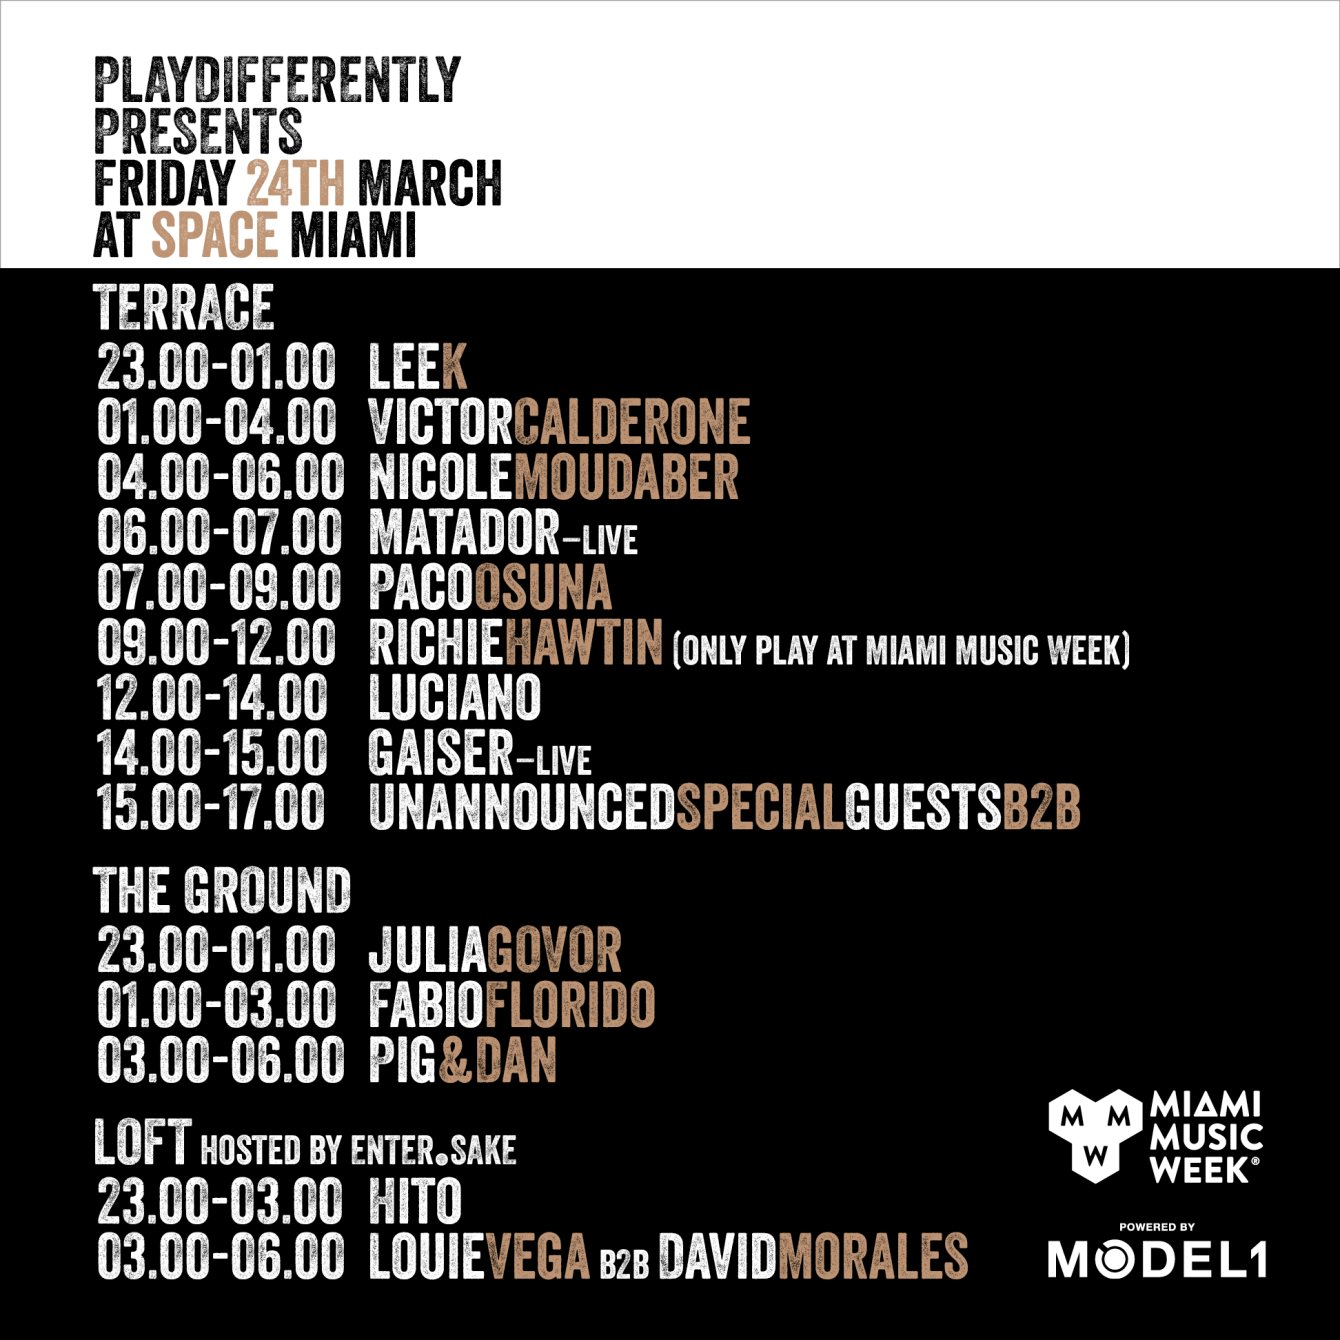 Playdifferently presents Friday 24th March at Space Miami - Flyer front